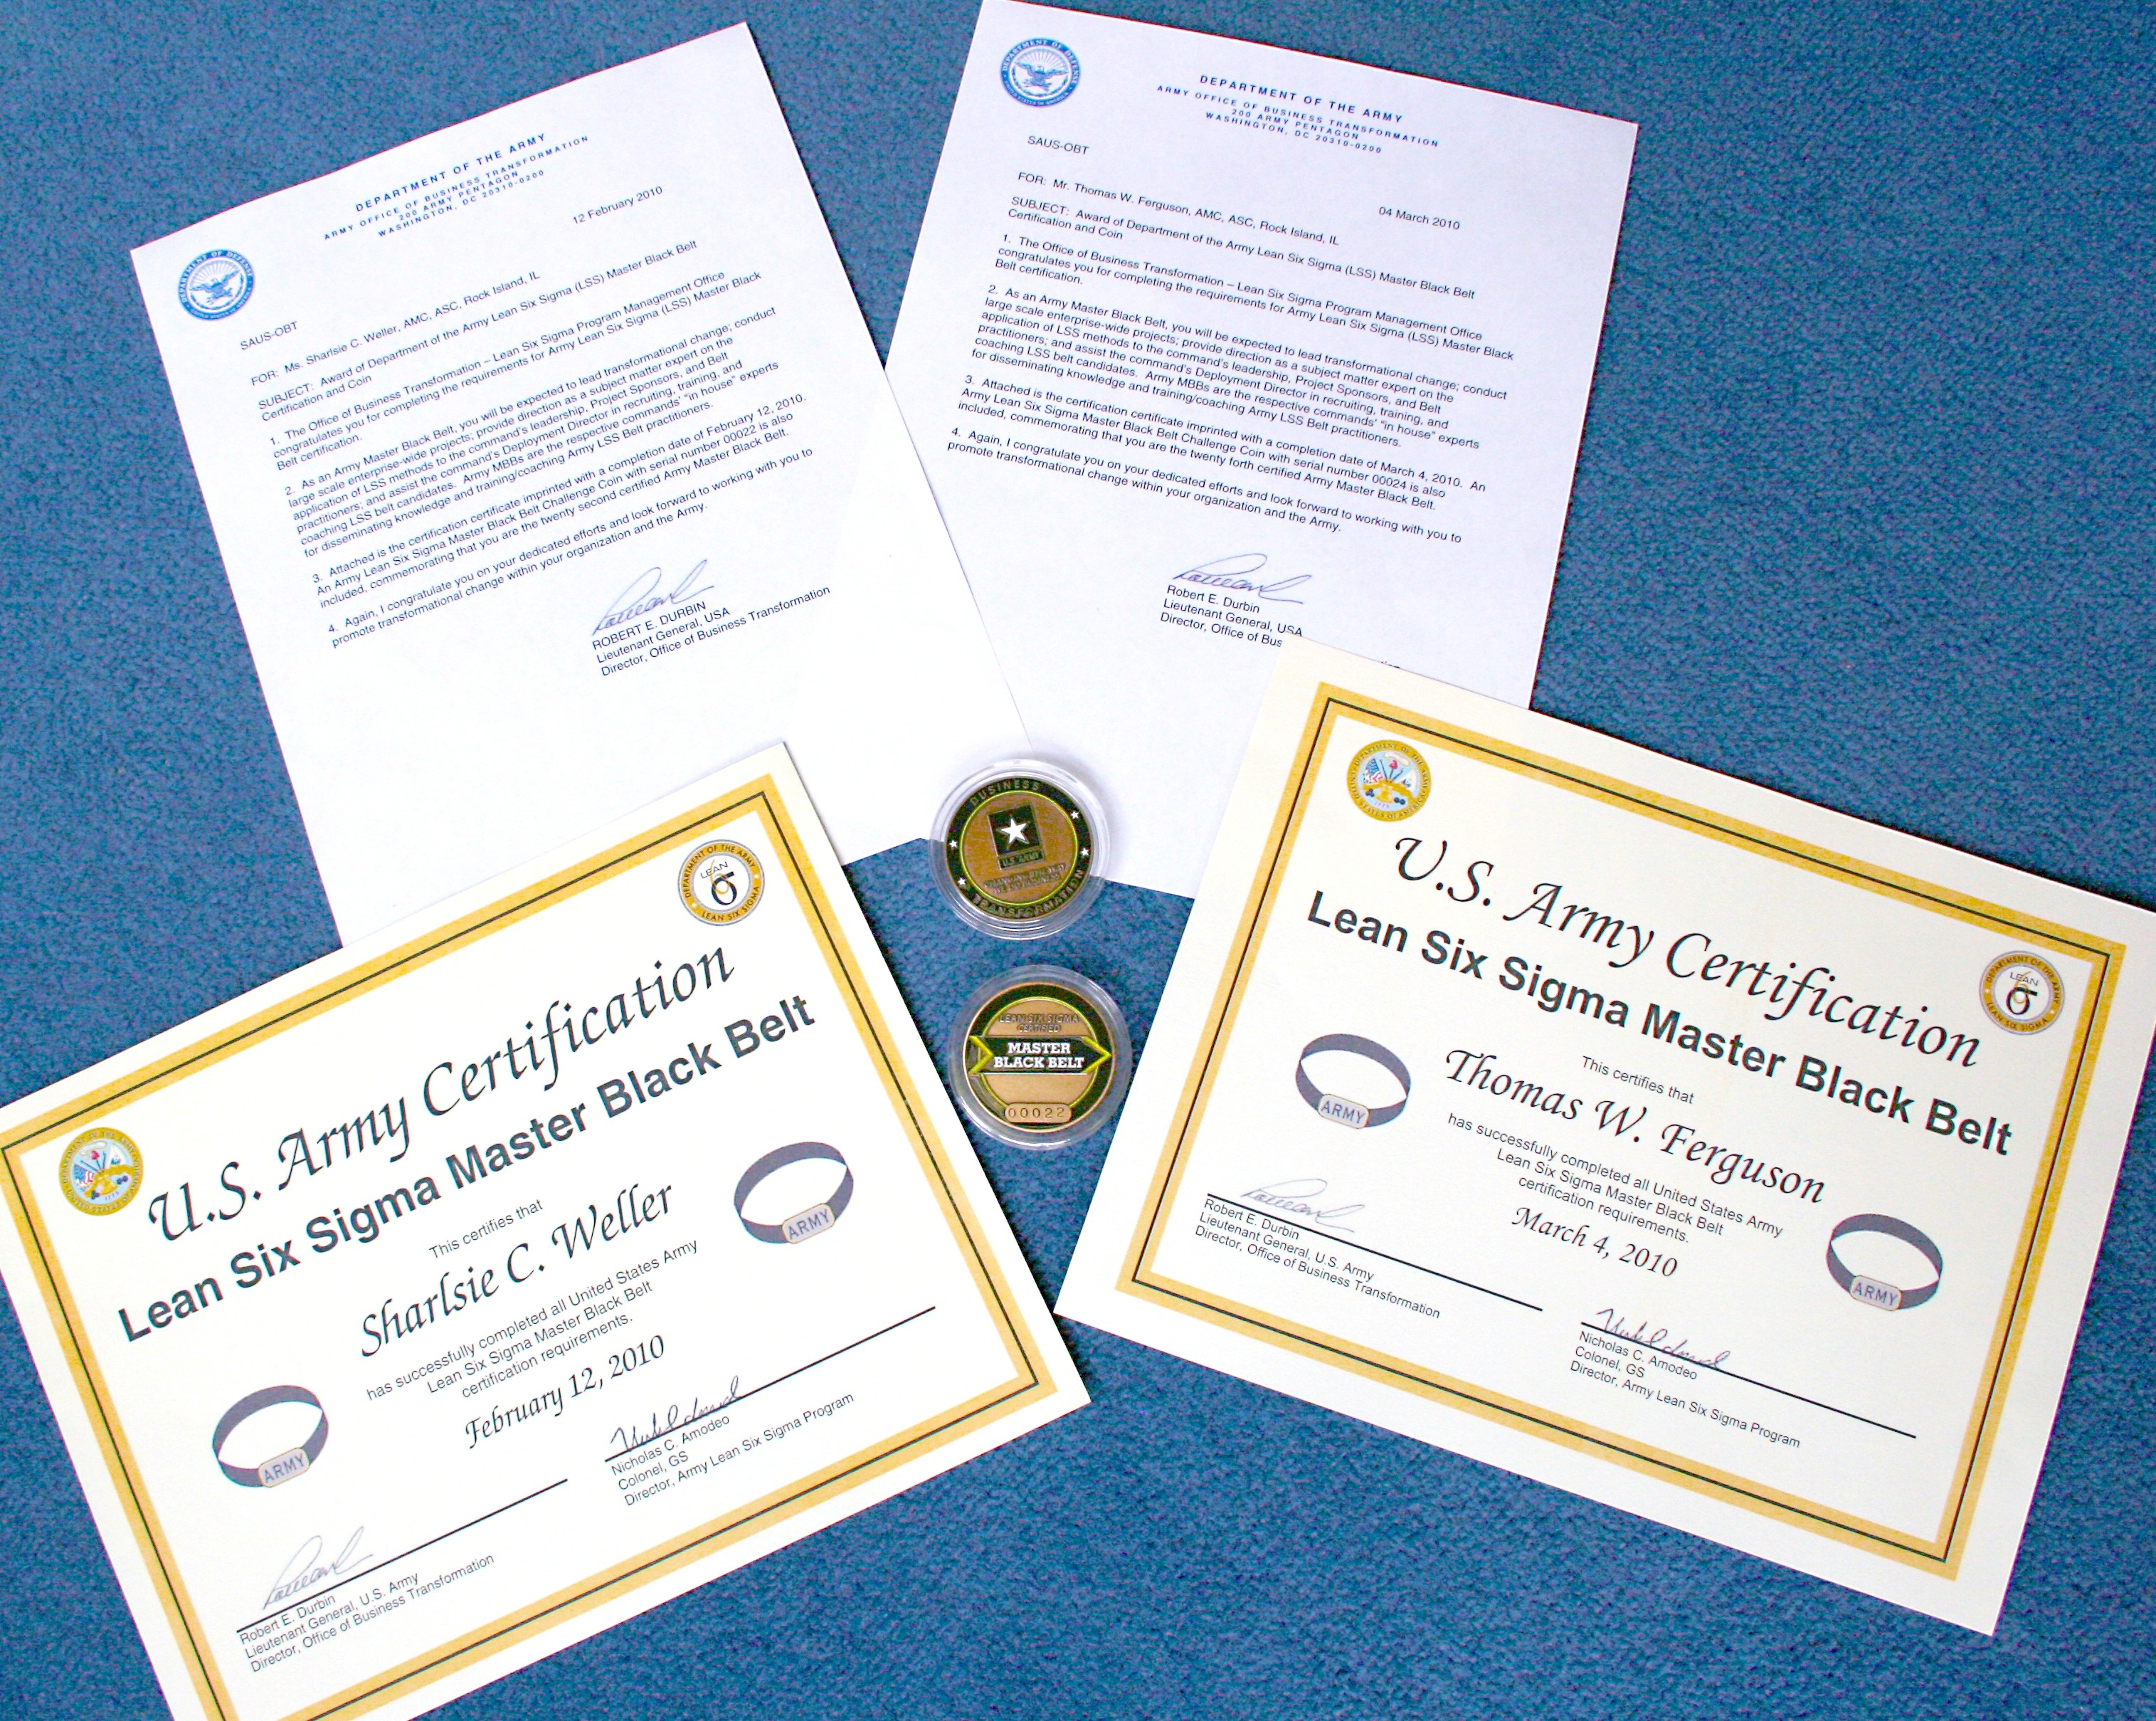 Two asc personnel earn lean six sigma master black belt two asc personnel earn lean six sigma master black belt certification xflitez Images